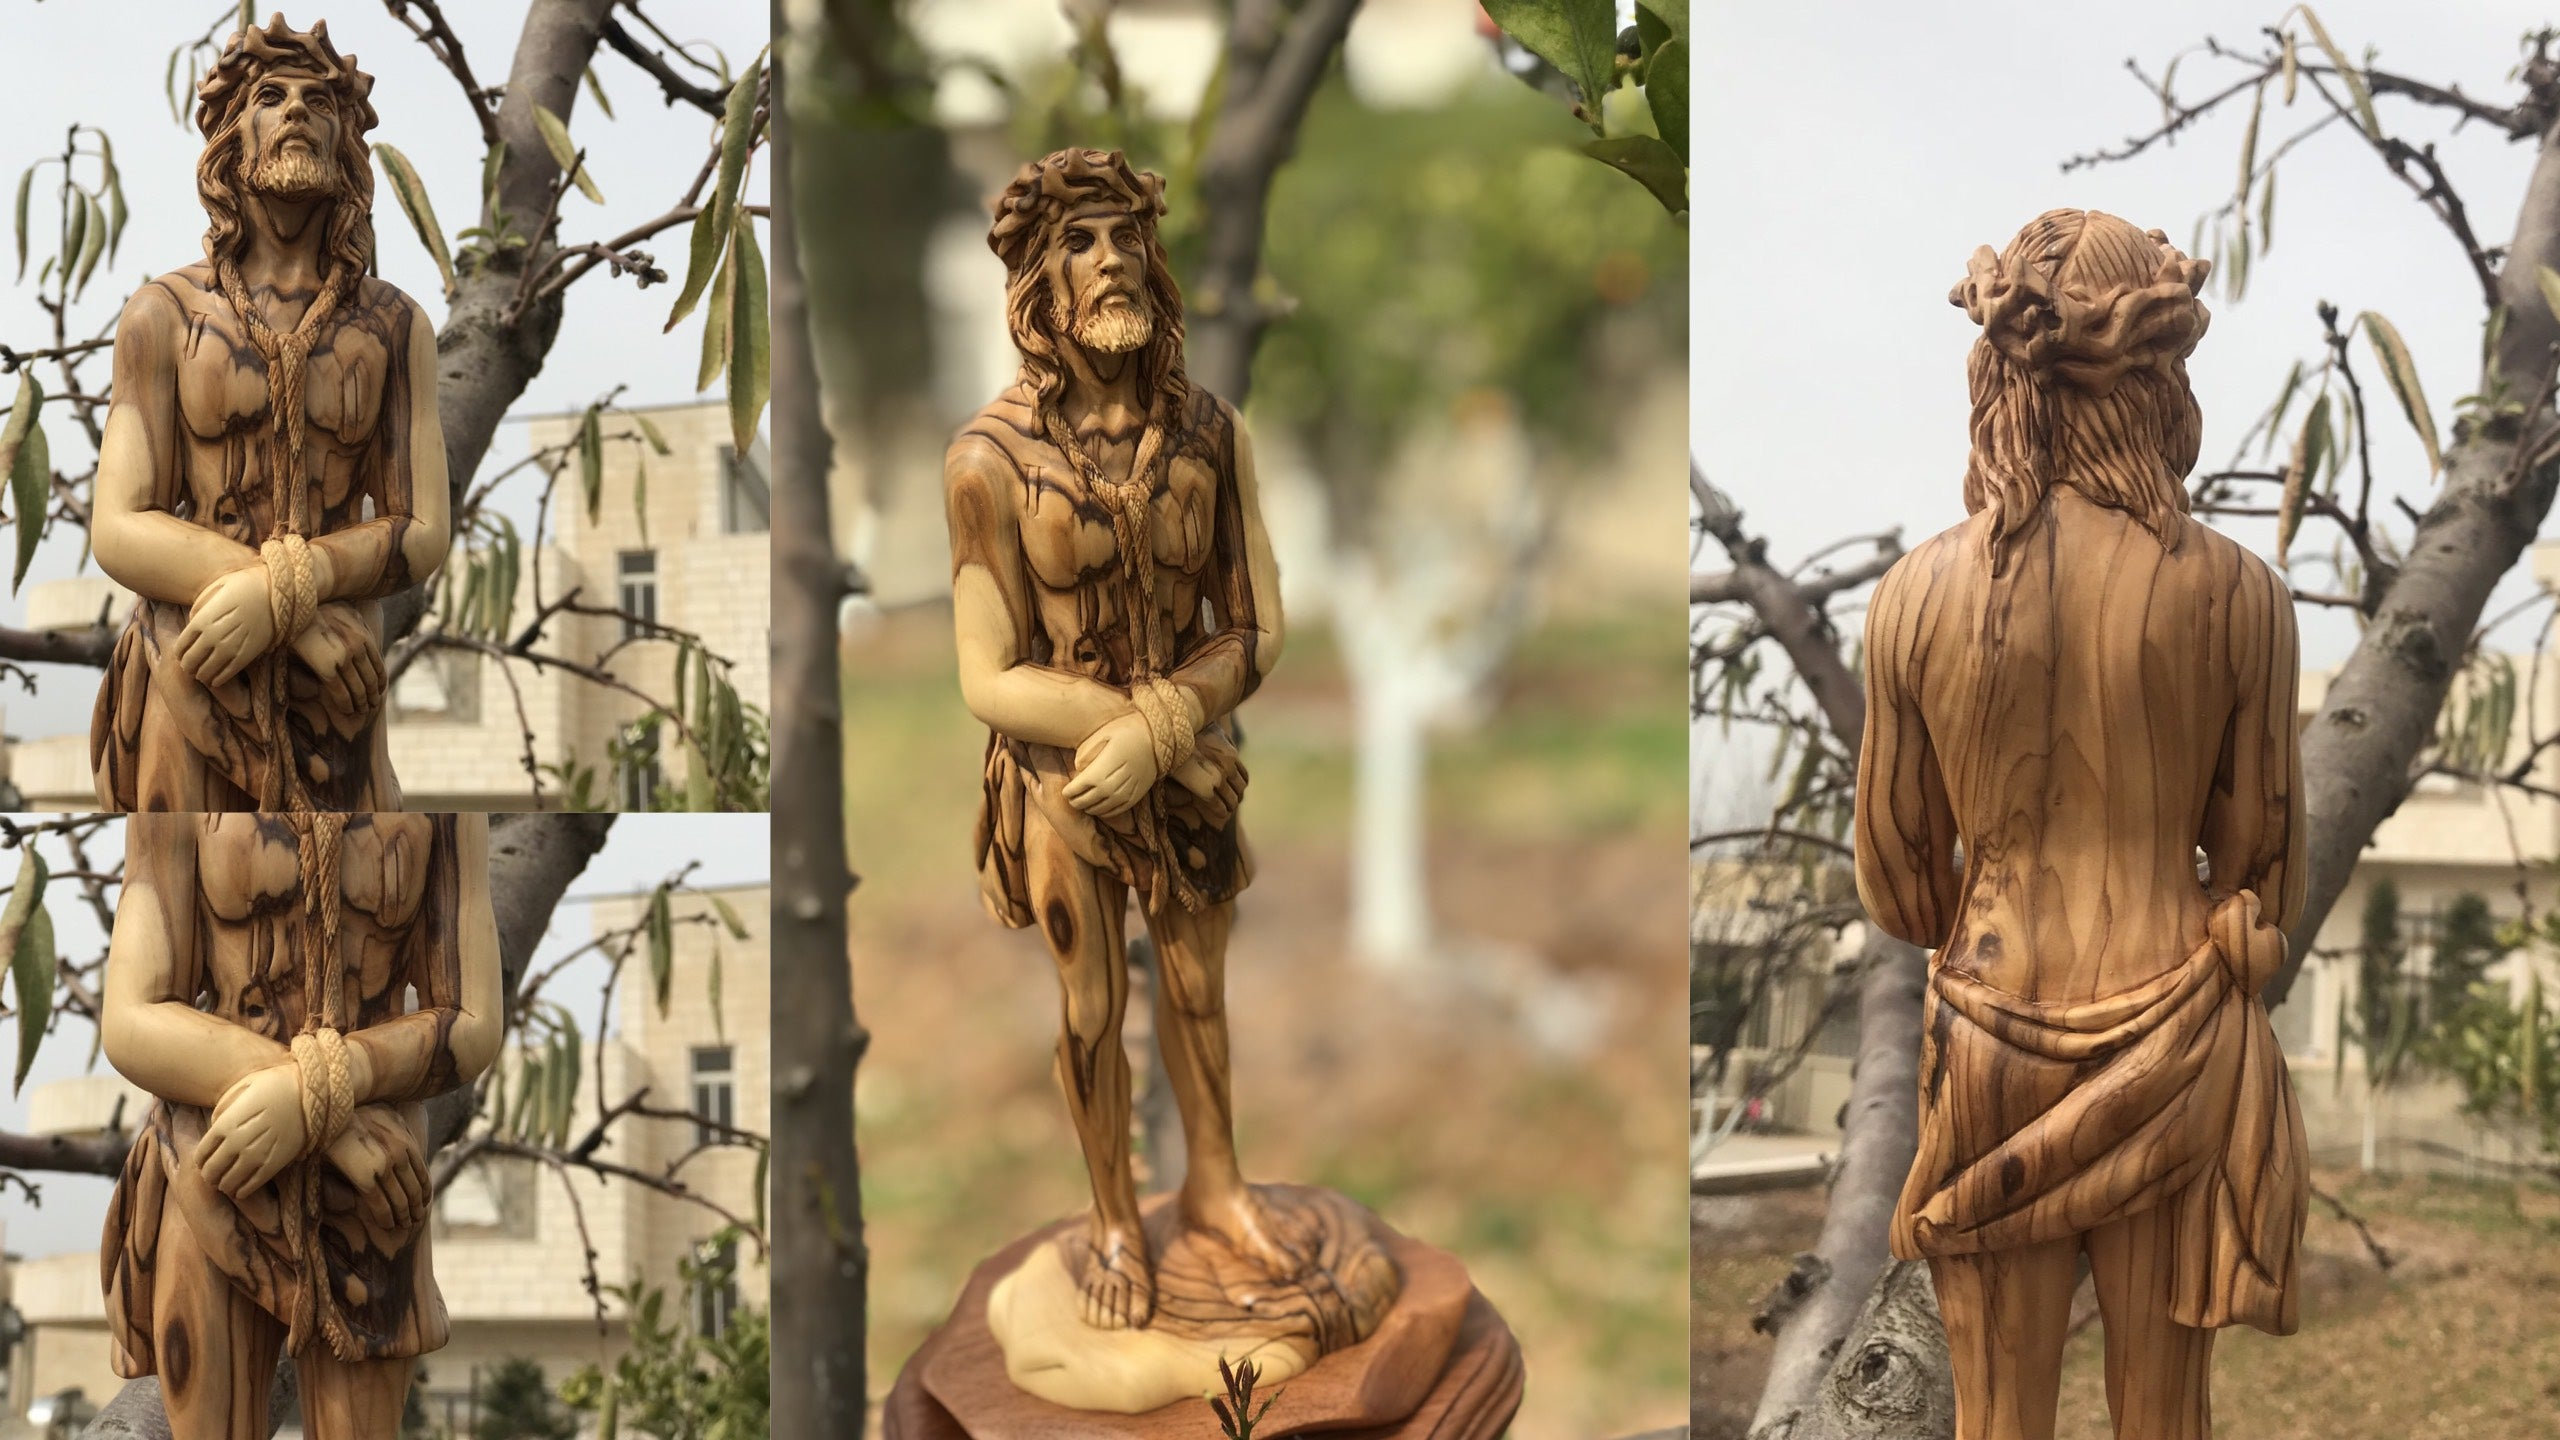 Olive Wood Statue of Christ as the Man of Sorrows